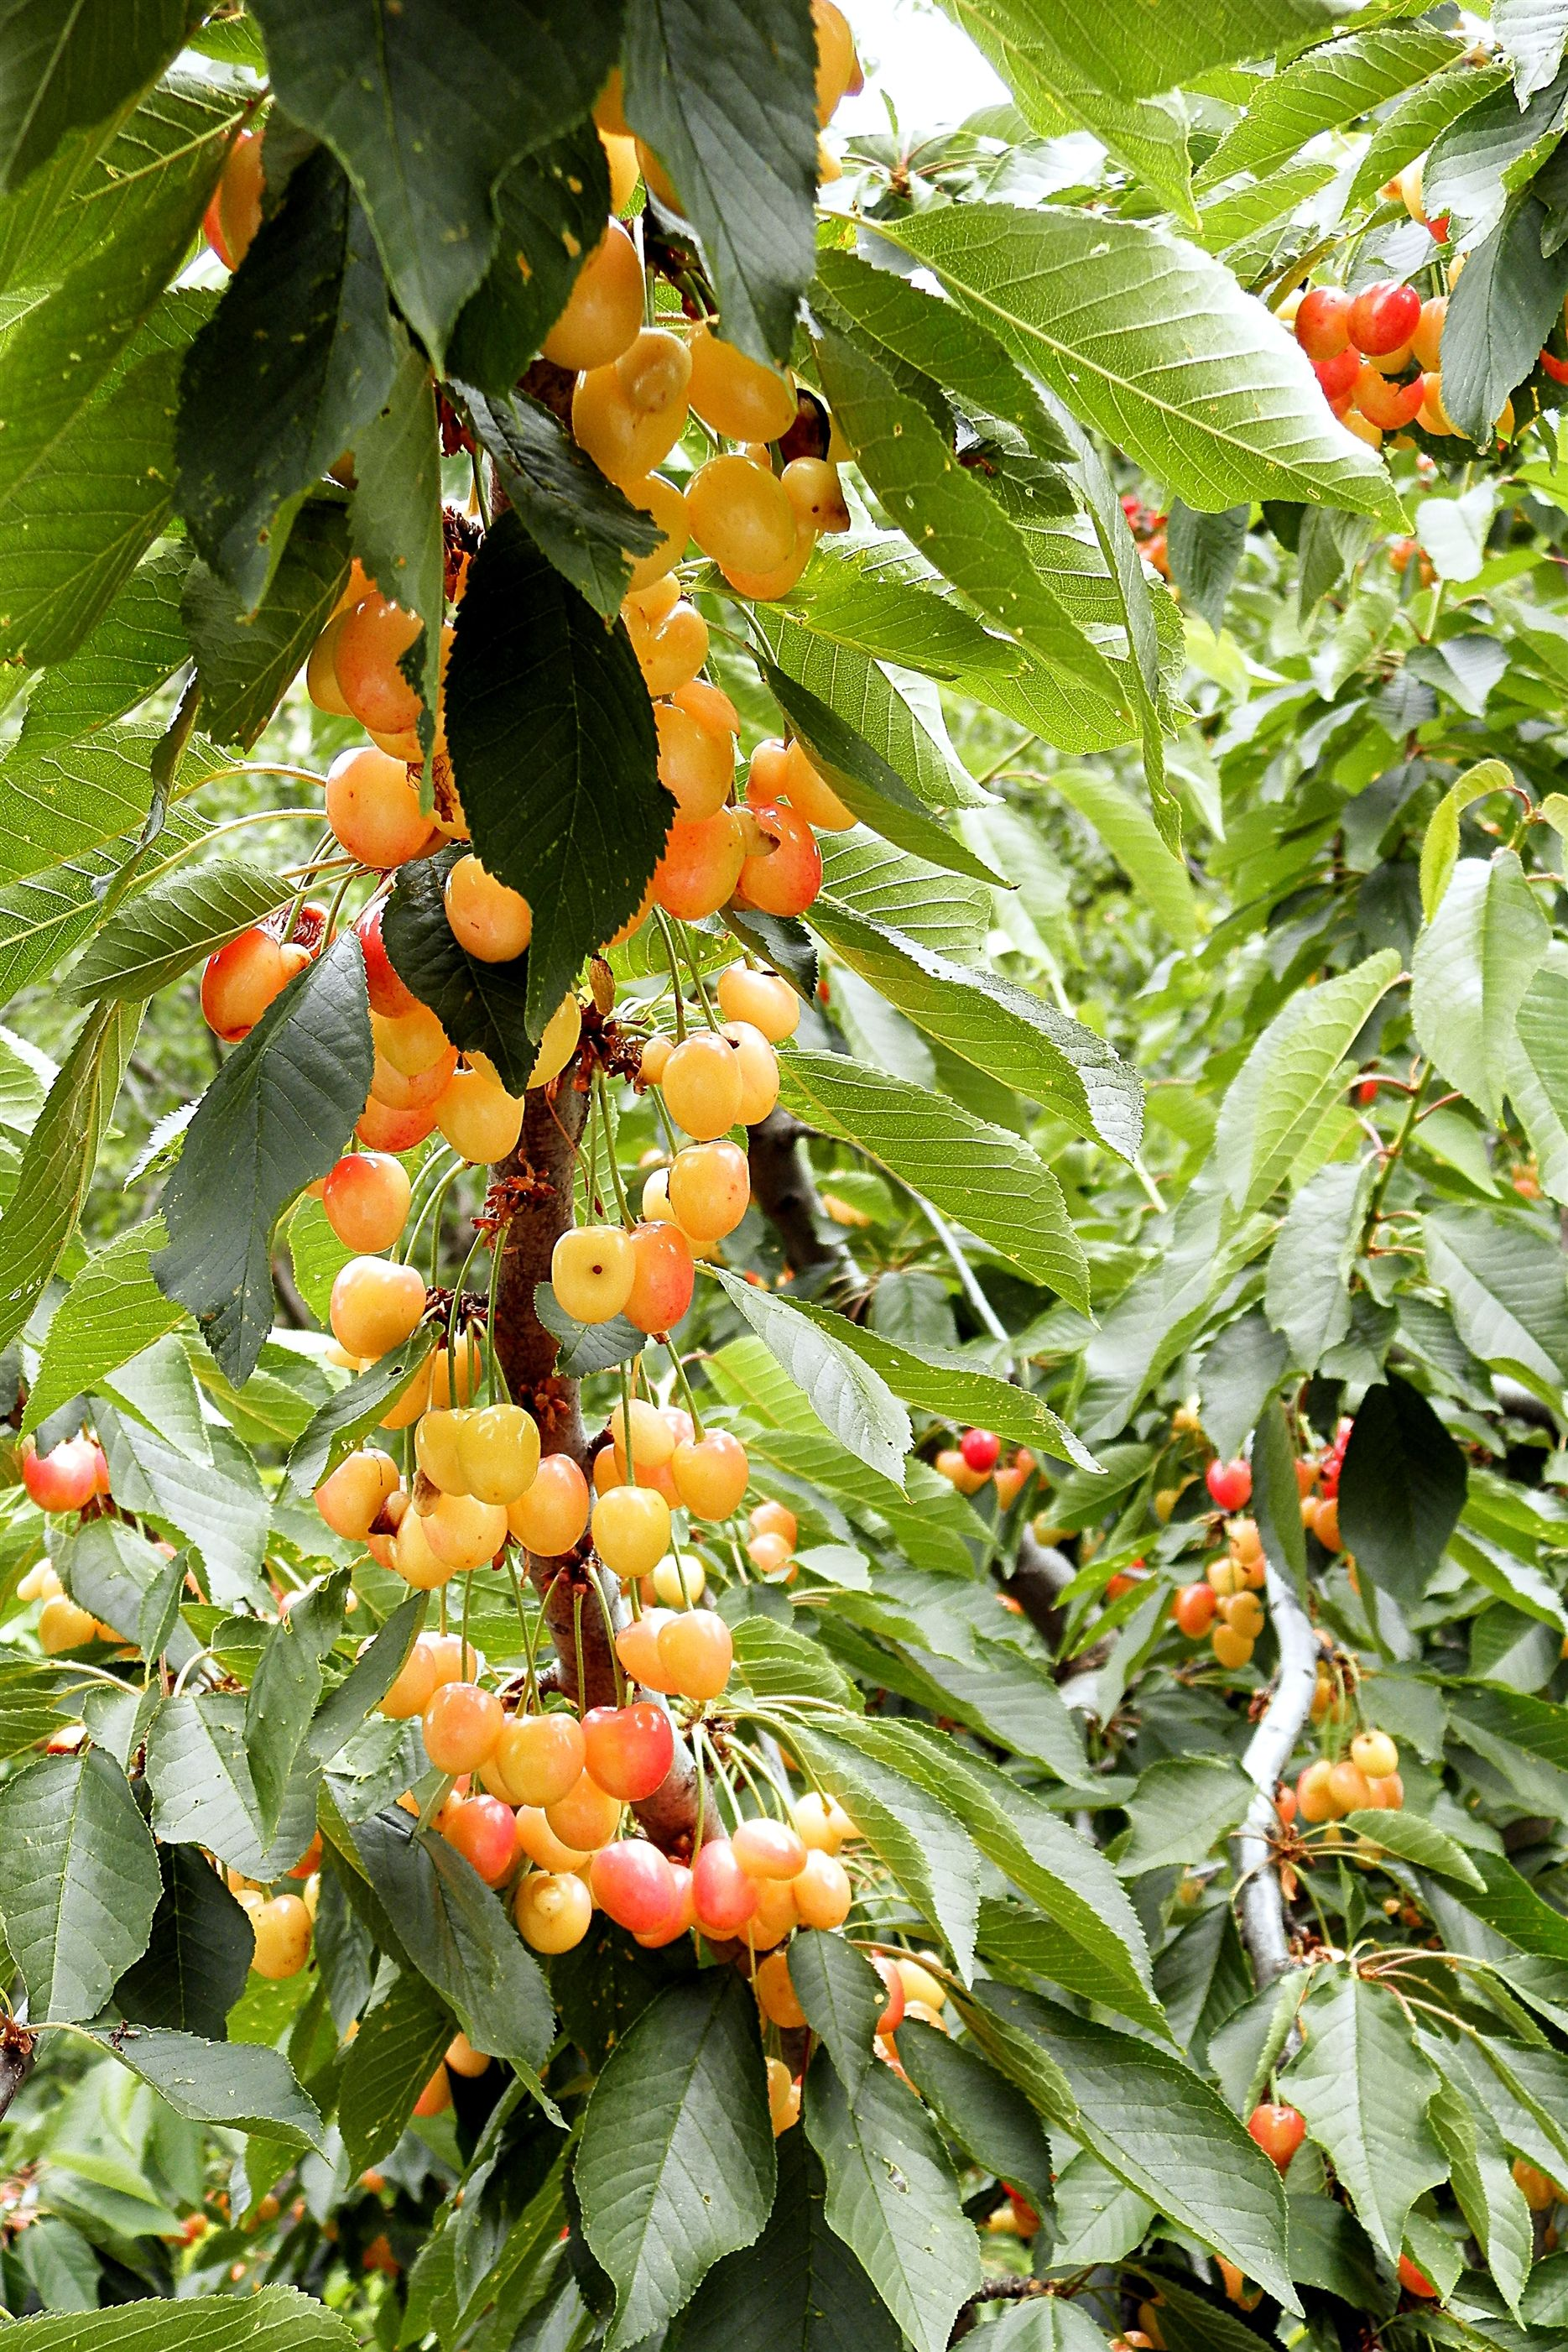 Orchard Fruit From The Village Of Kambos - Greece &